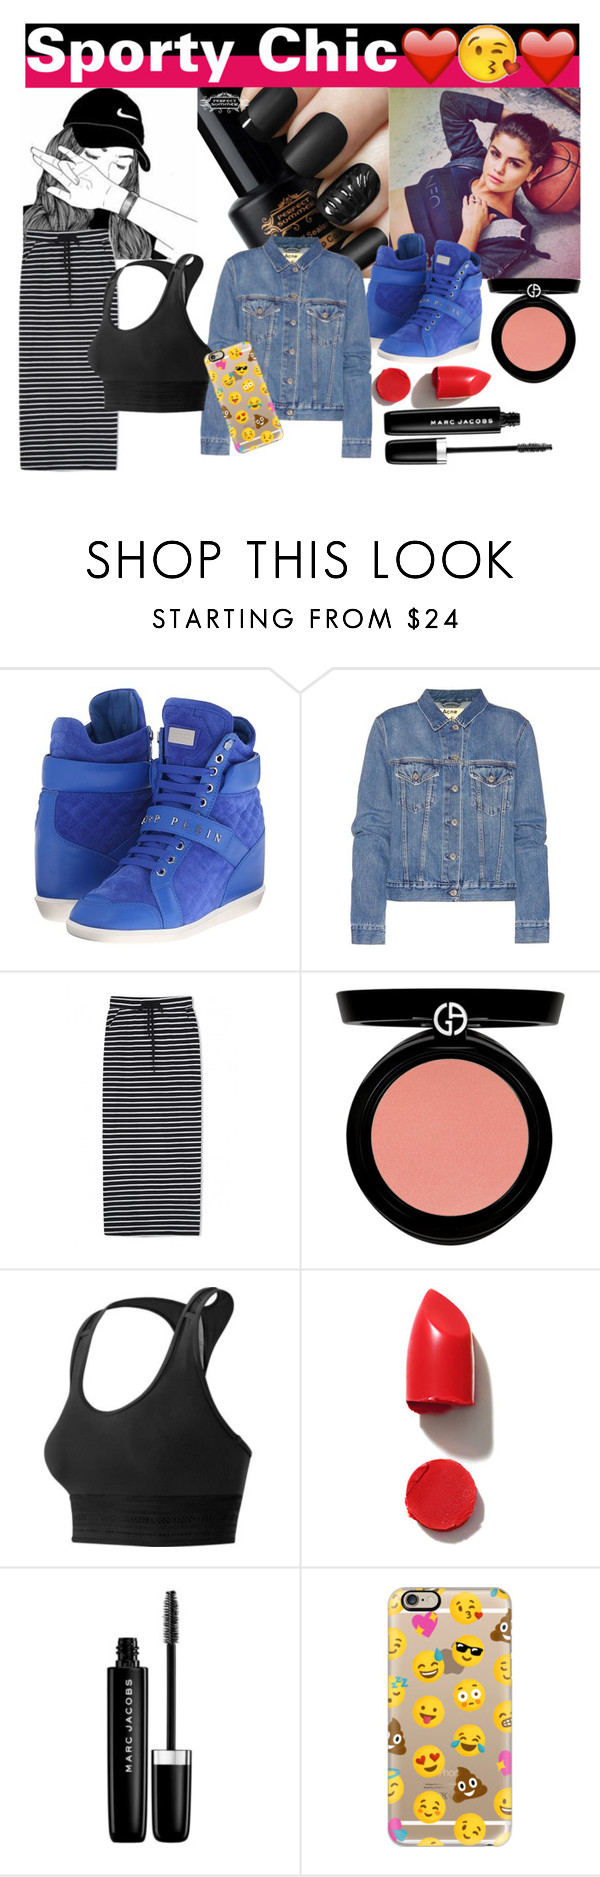 """""""Sporty Chic"""" by emilyemilie ❤ liked on Polyvore featuring adidas NEO, Philipp Plein, Acne Studios, WithChic, Armani Beauty, New Balance, NARS Cosmetics, Marc Jacobs and Casetify"""